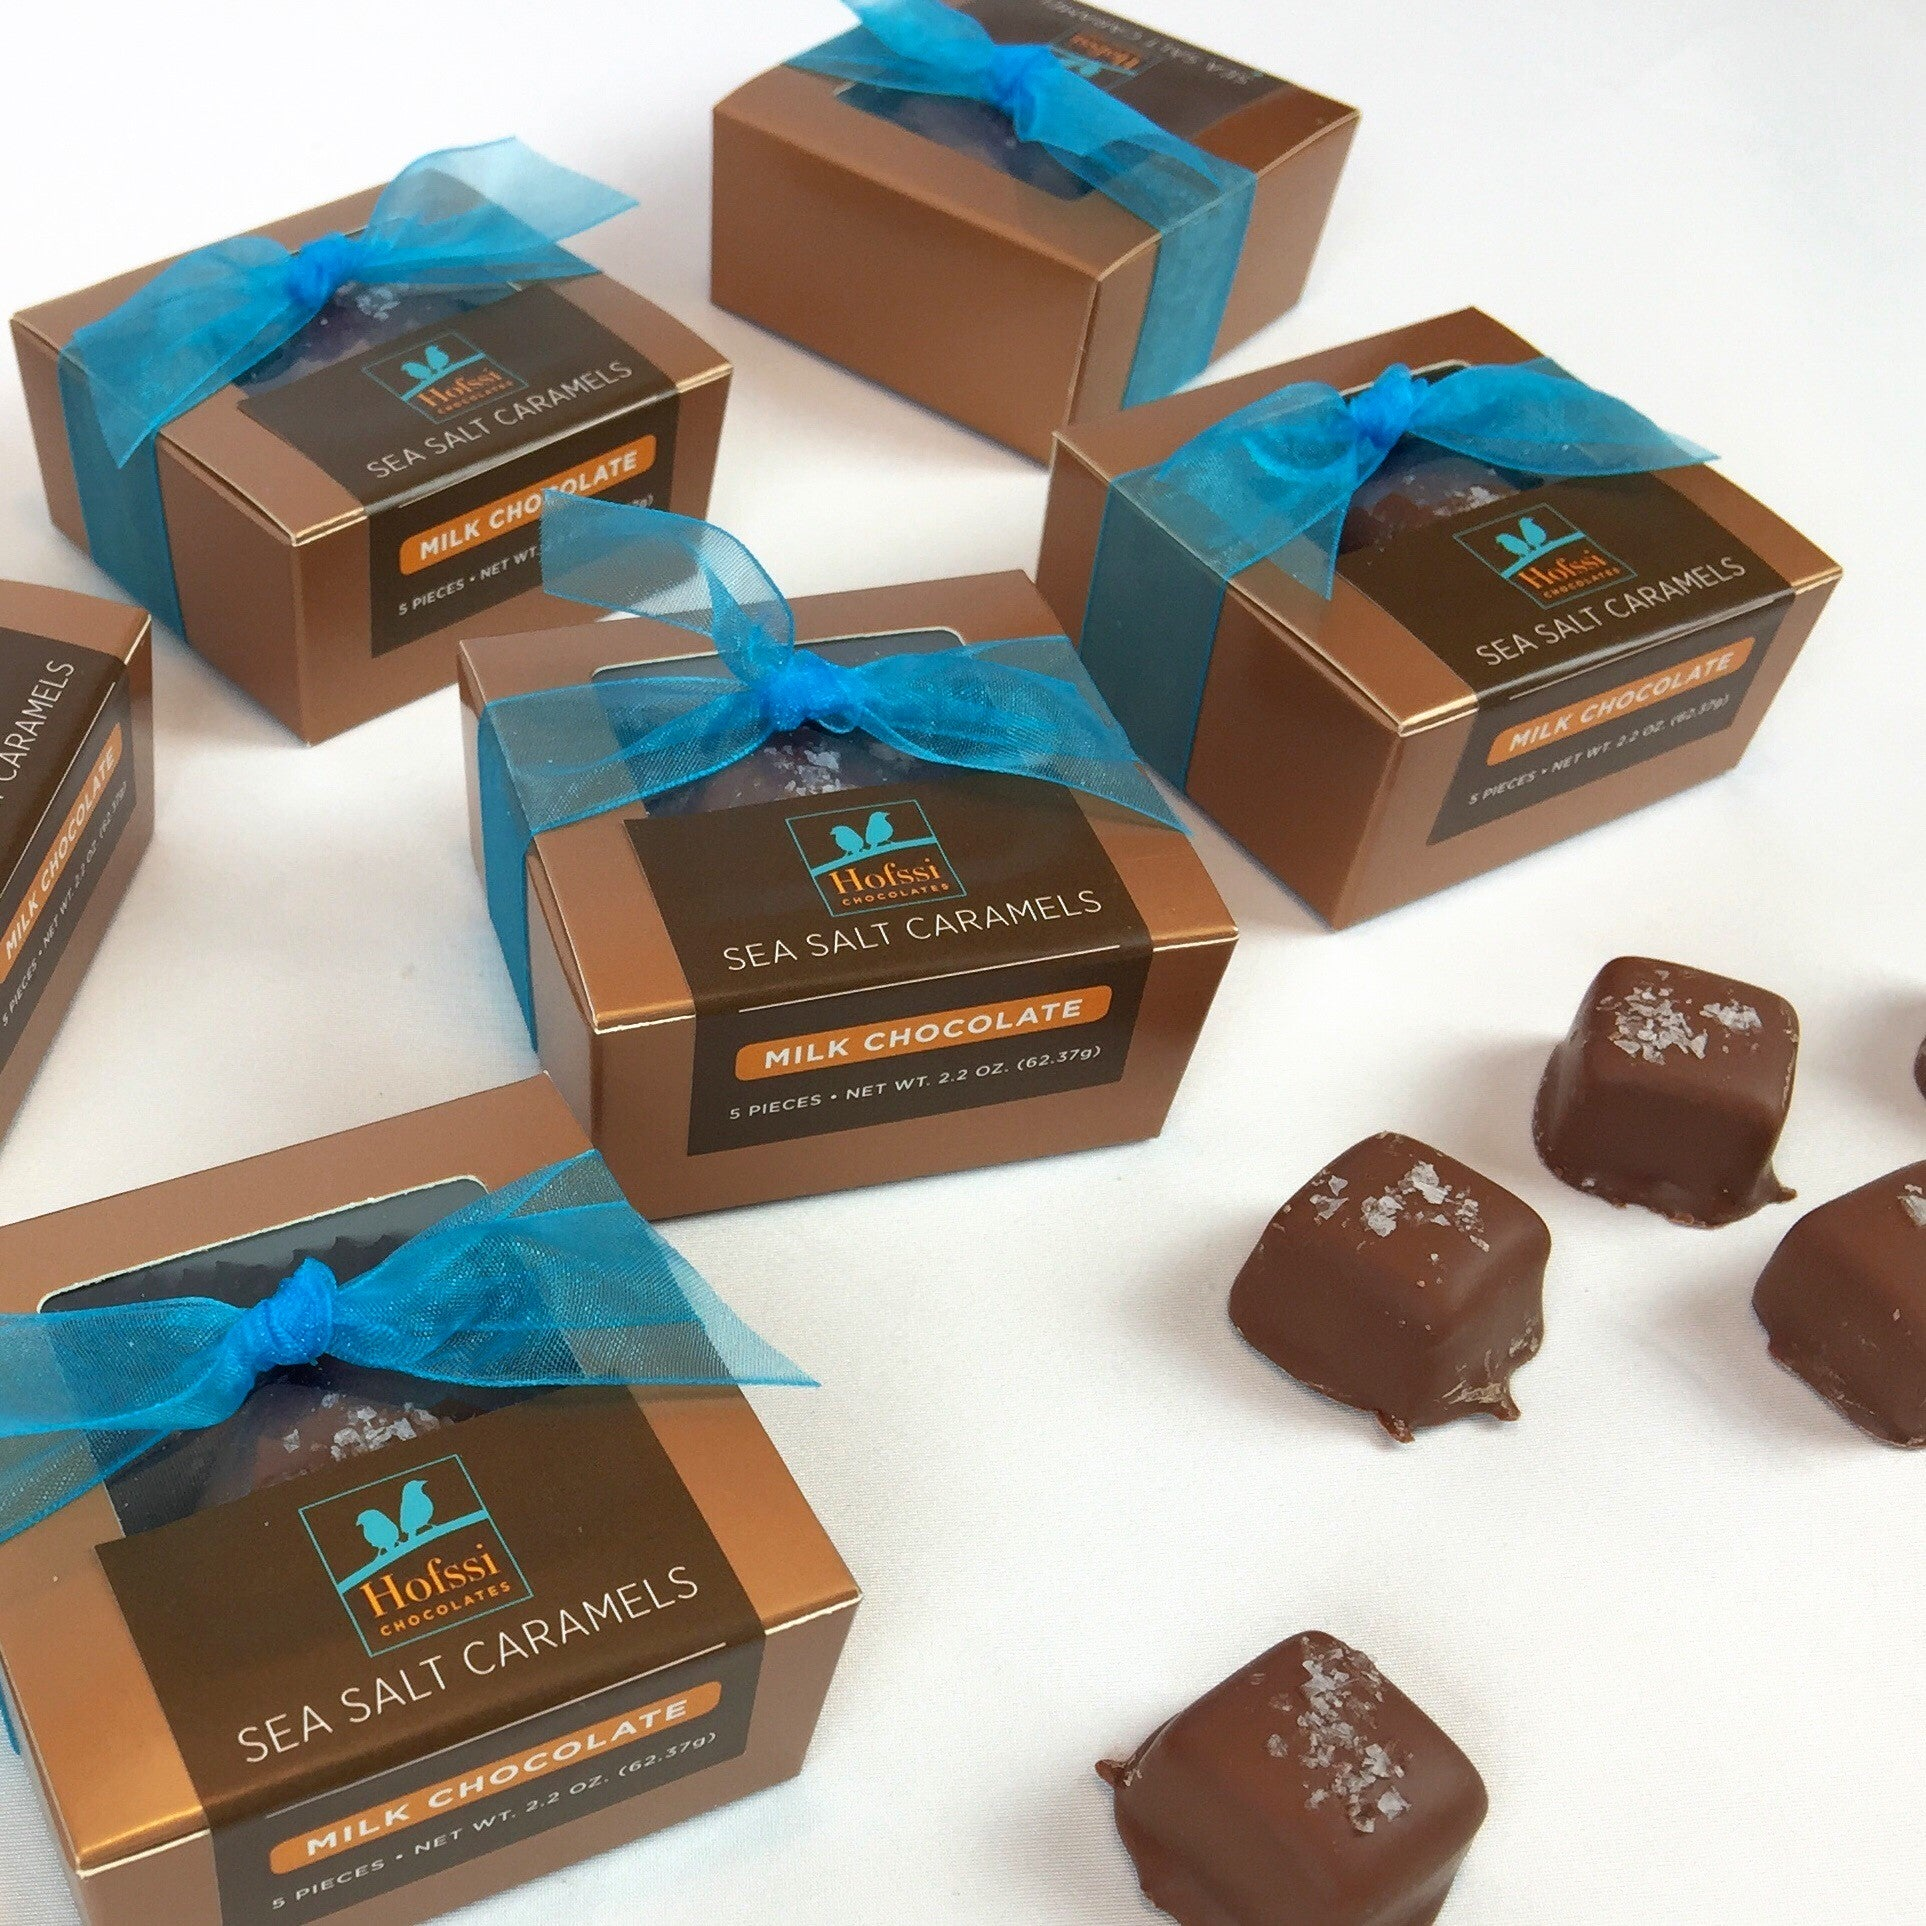 Milk Chocolate Dipped Sea Salt Caramels - 2.2 oz. Mini Gift Box